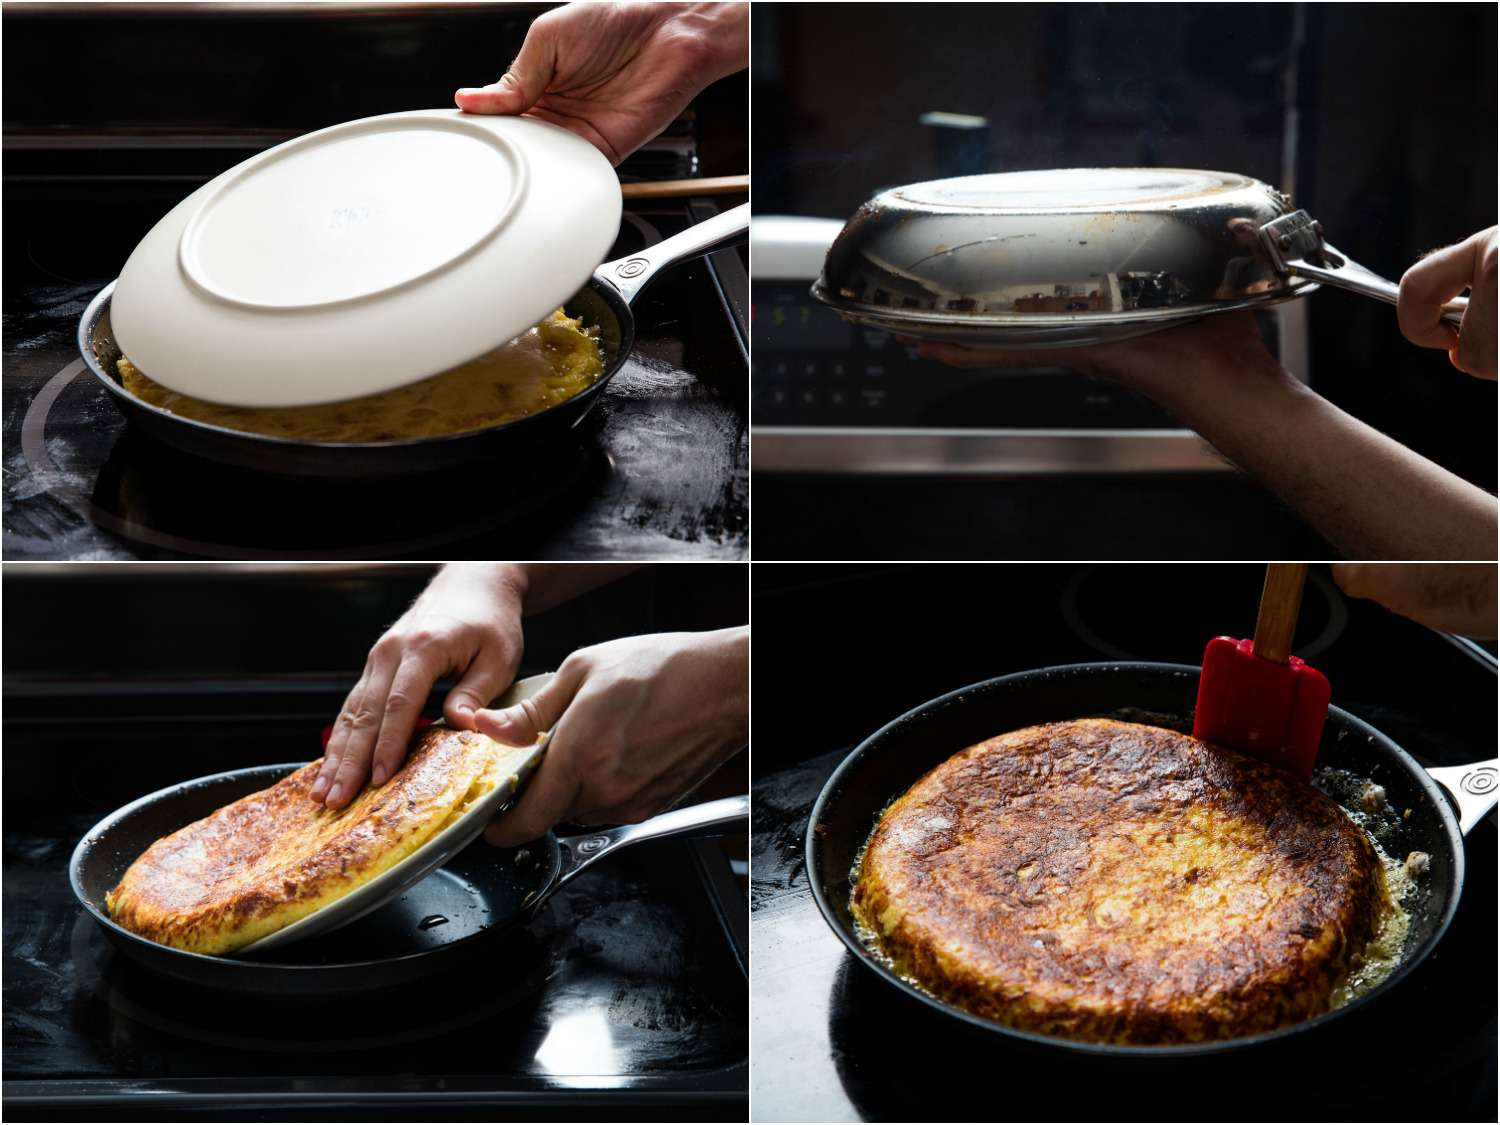 A collage of four images showing how to flip a tortilla española. Cover the tortilla with a plate, quickly flip the pan upside down so the tortilla is on the plate. Return the skillet to the heat and slide the tortilla in. Reshape the edges with a silicone spatula.